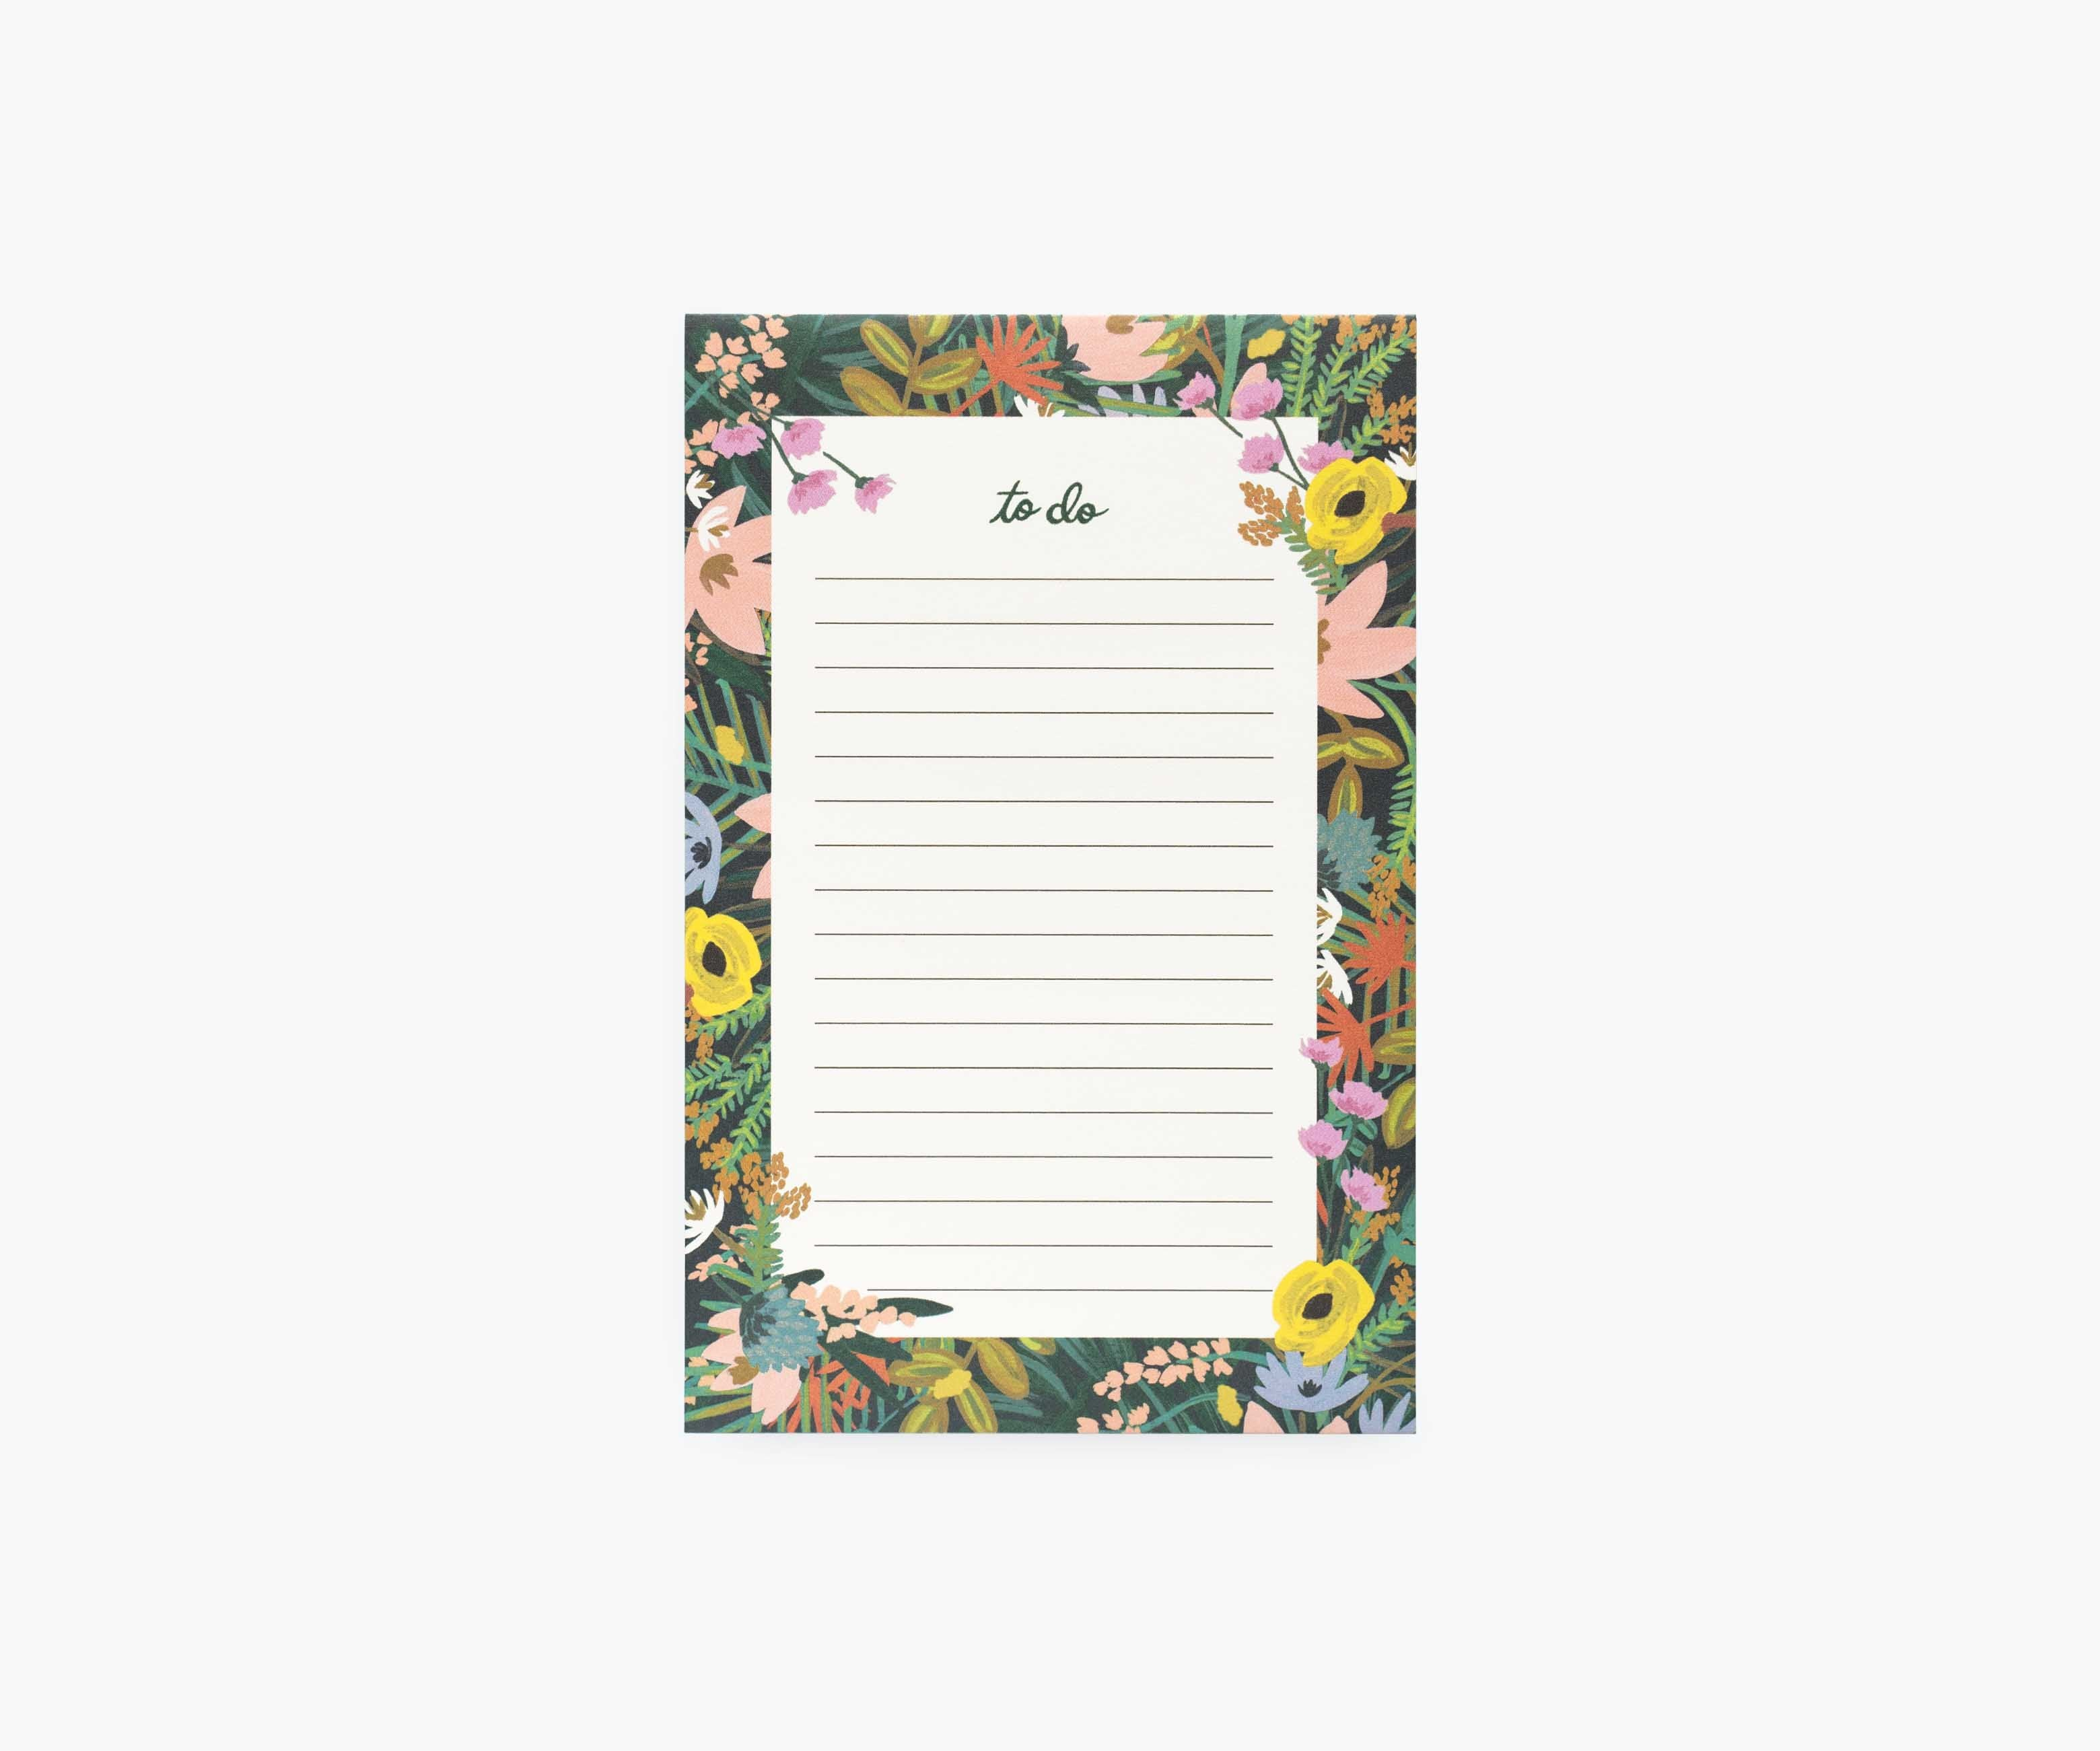 Havana Lined Notepad, Rifle Paper Co.